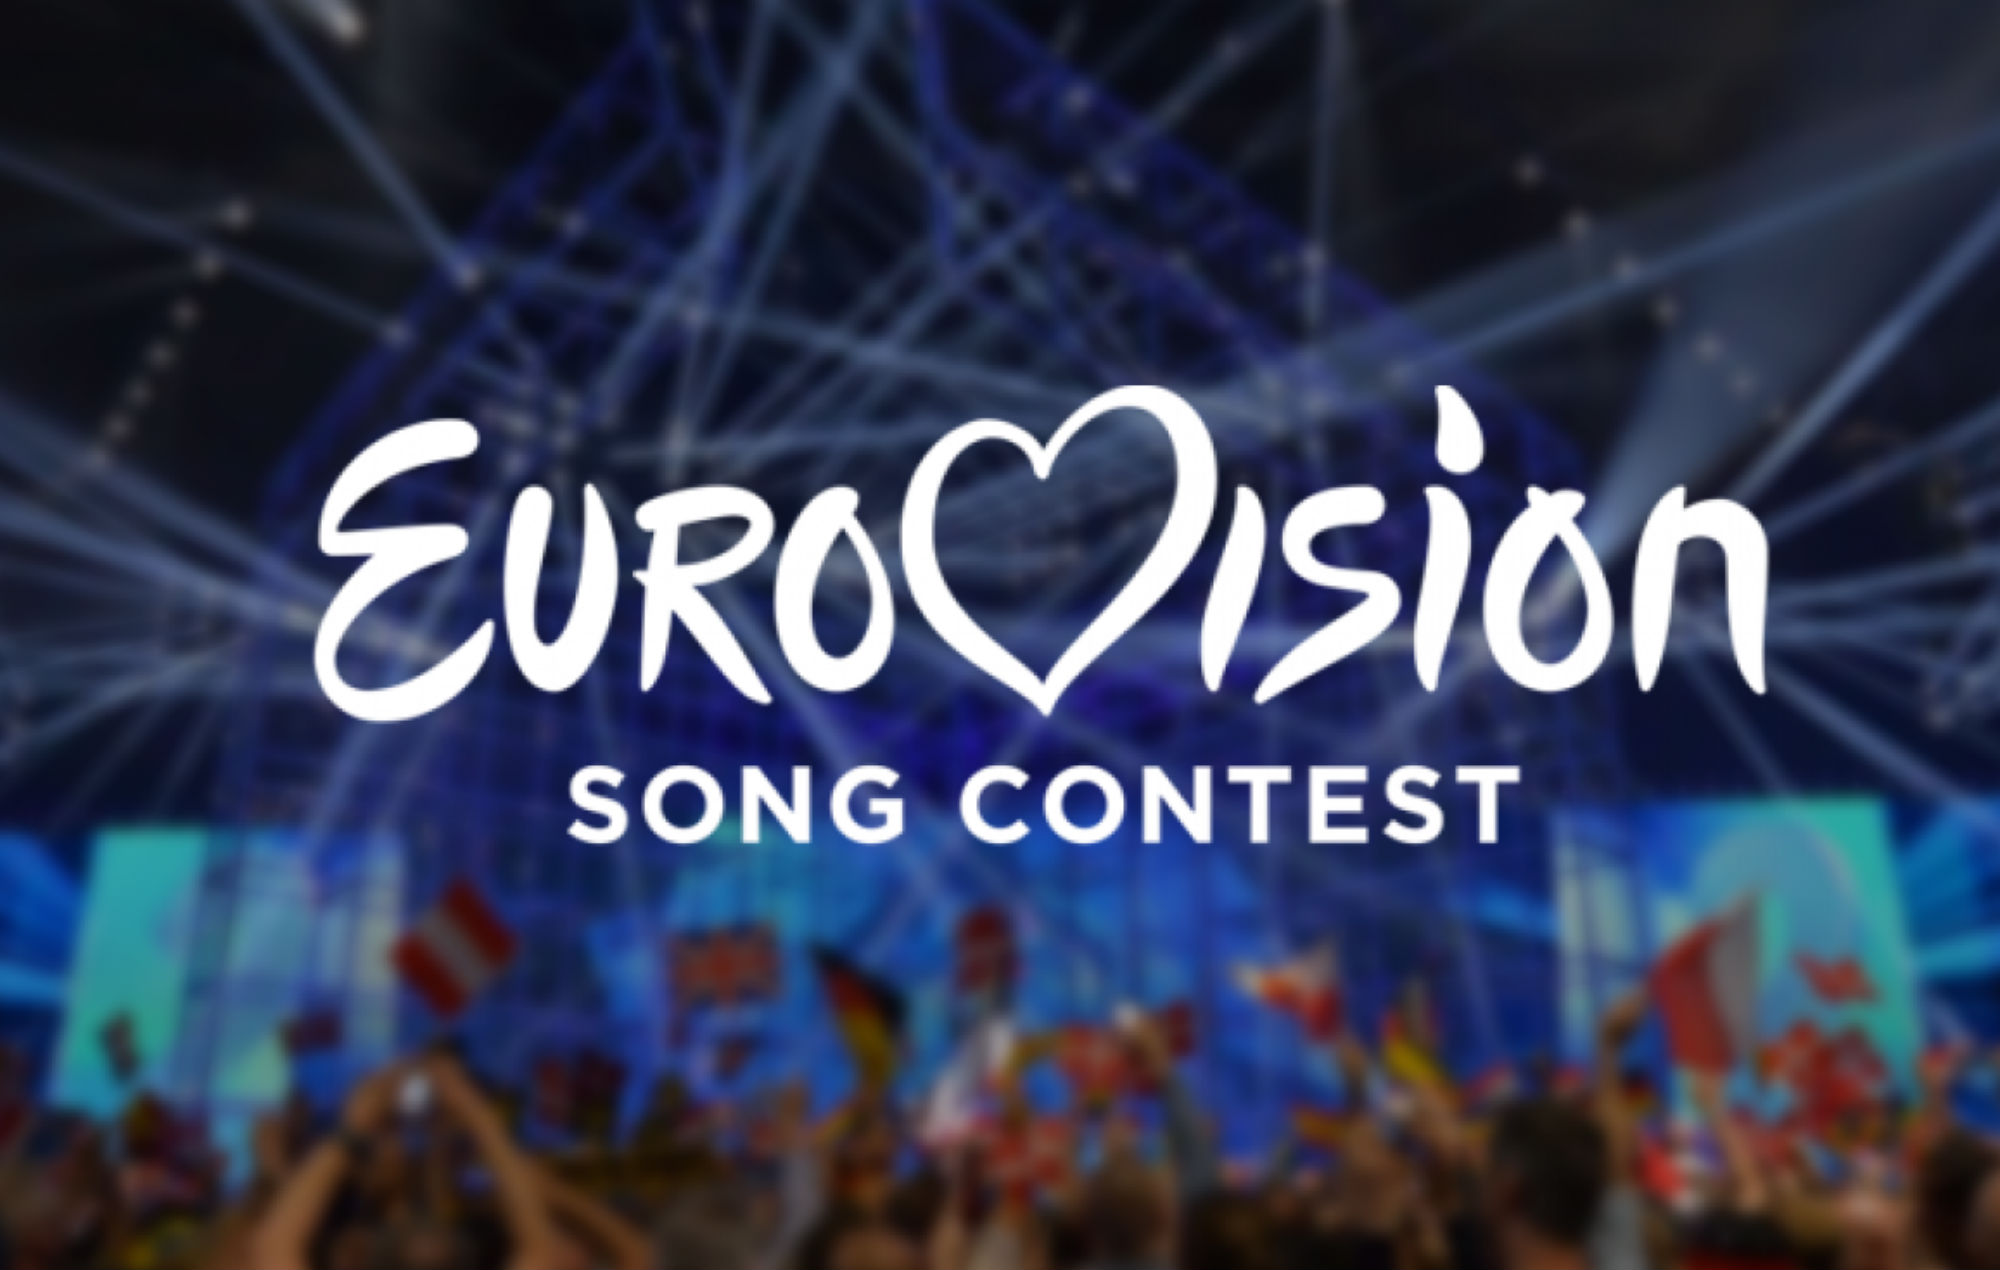 America is getting its own version of The Eurovision Song Contest